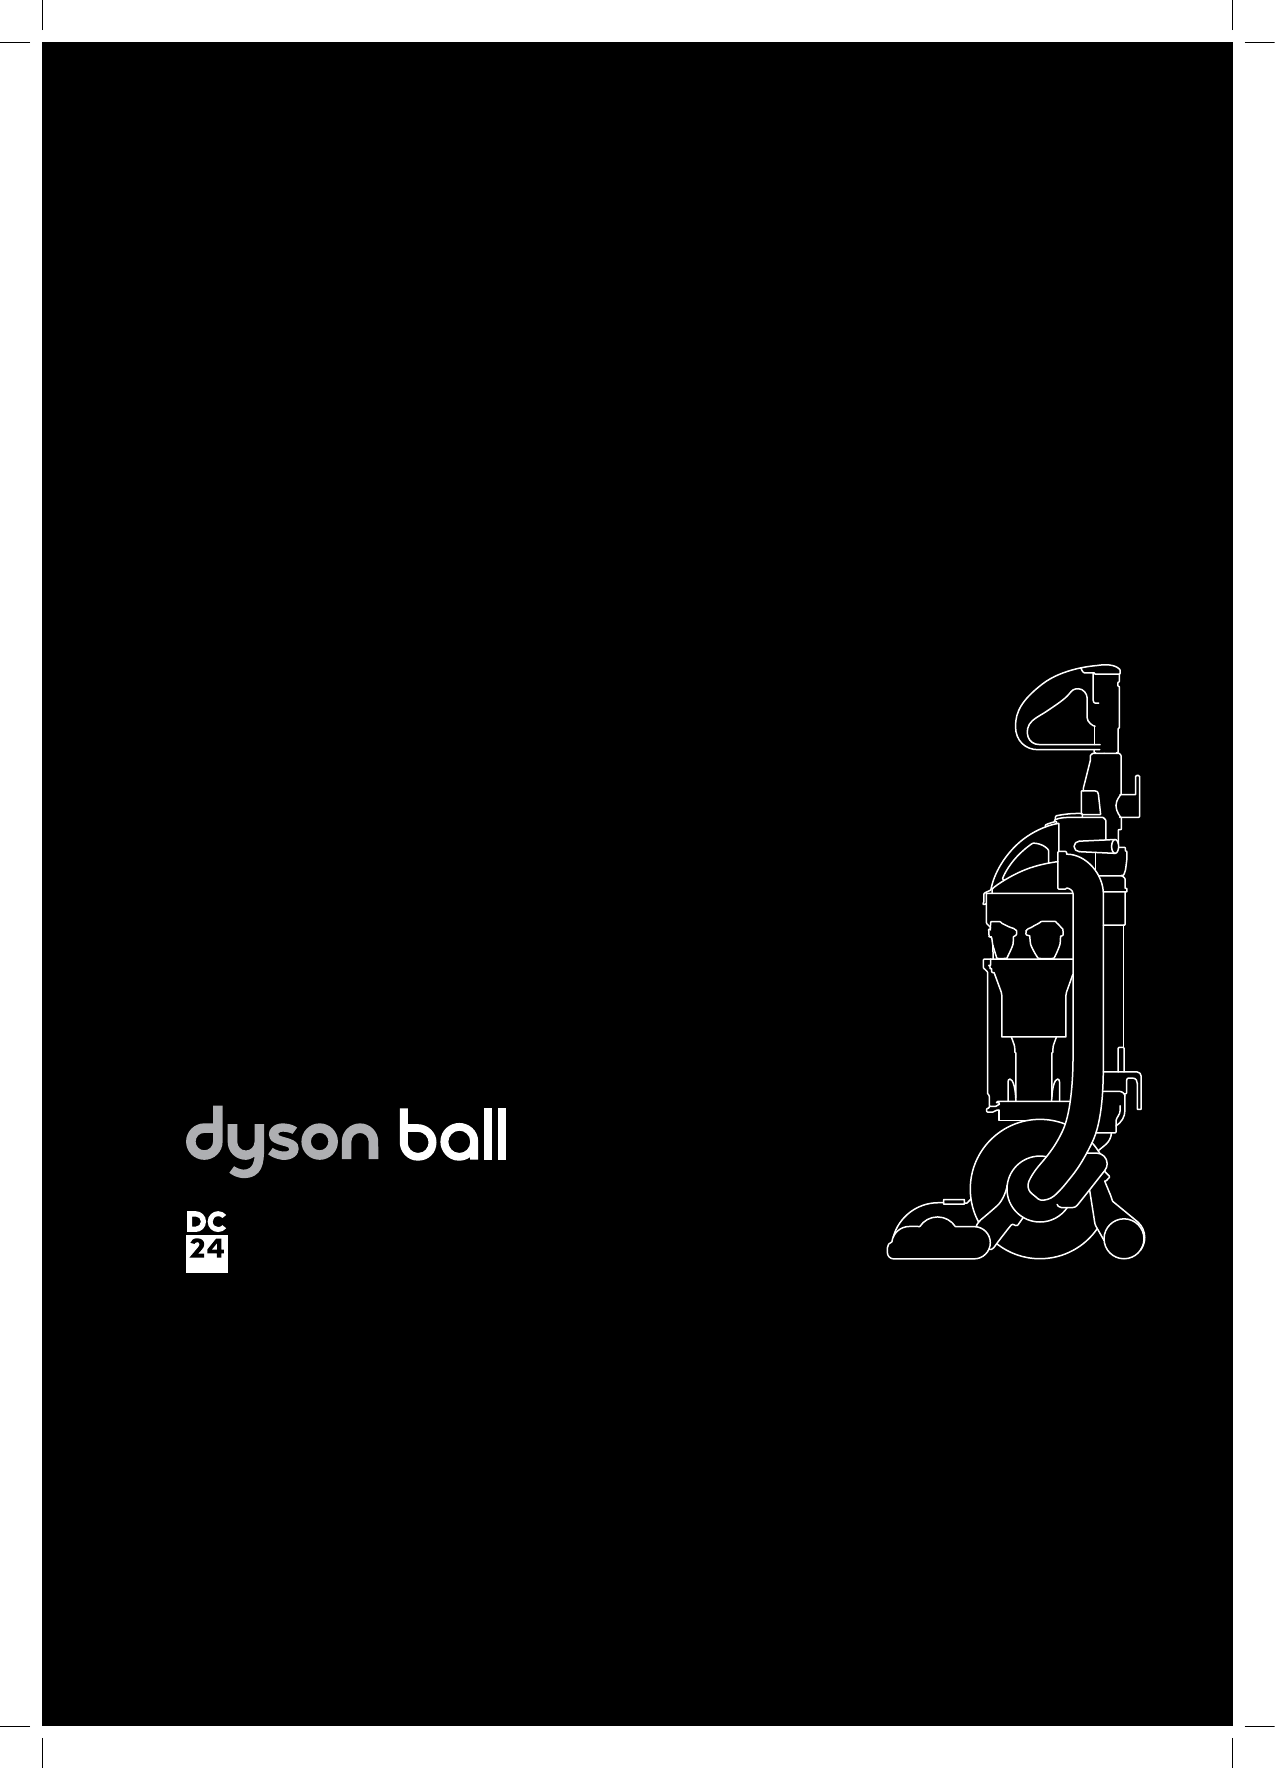 dyson vacuum cleaner dc24 user guide manualsonline com rh office manualsonline com dyson dc23 owners manual Dyson DC25 Parts Manual